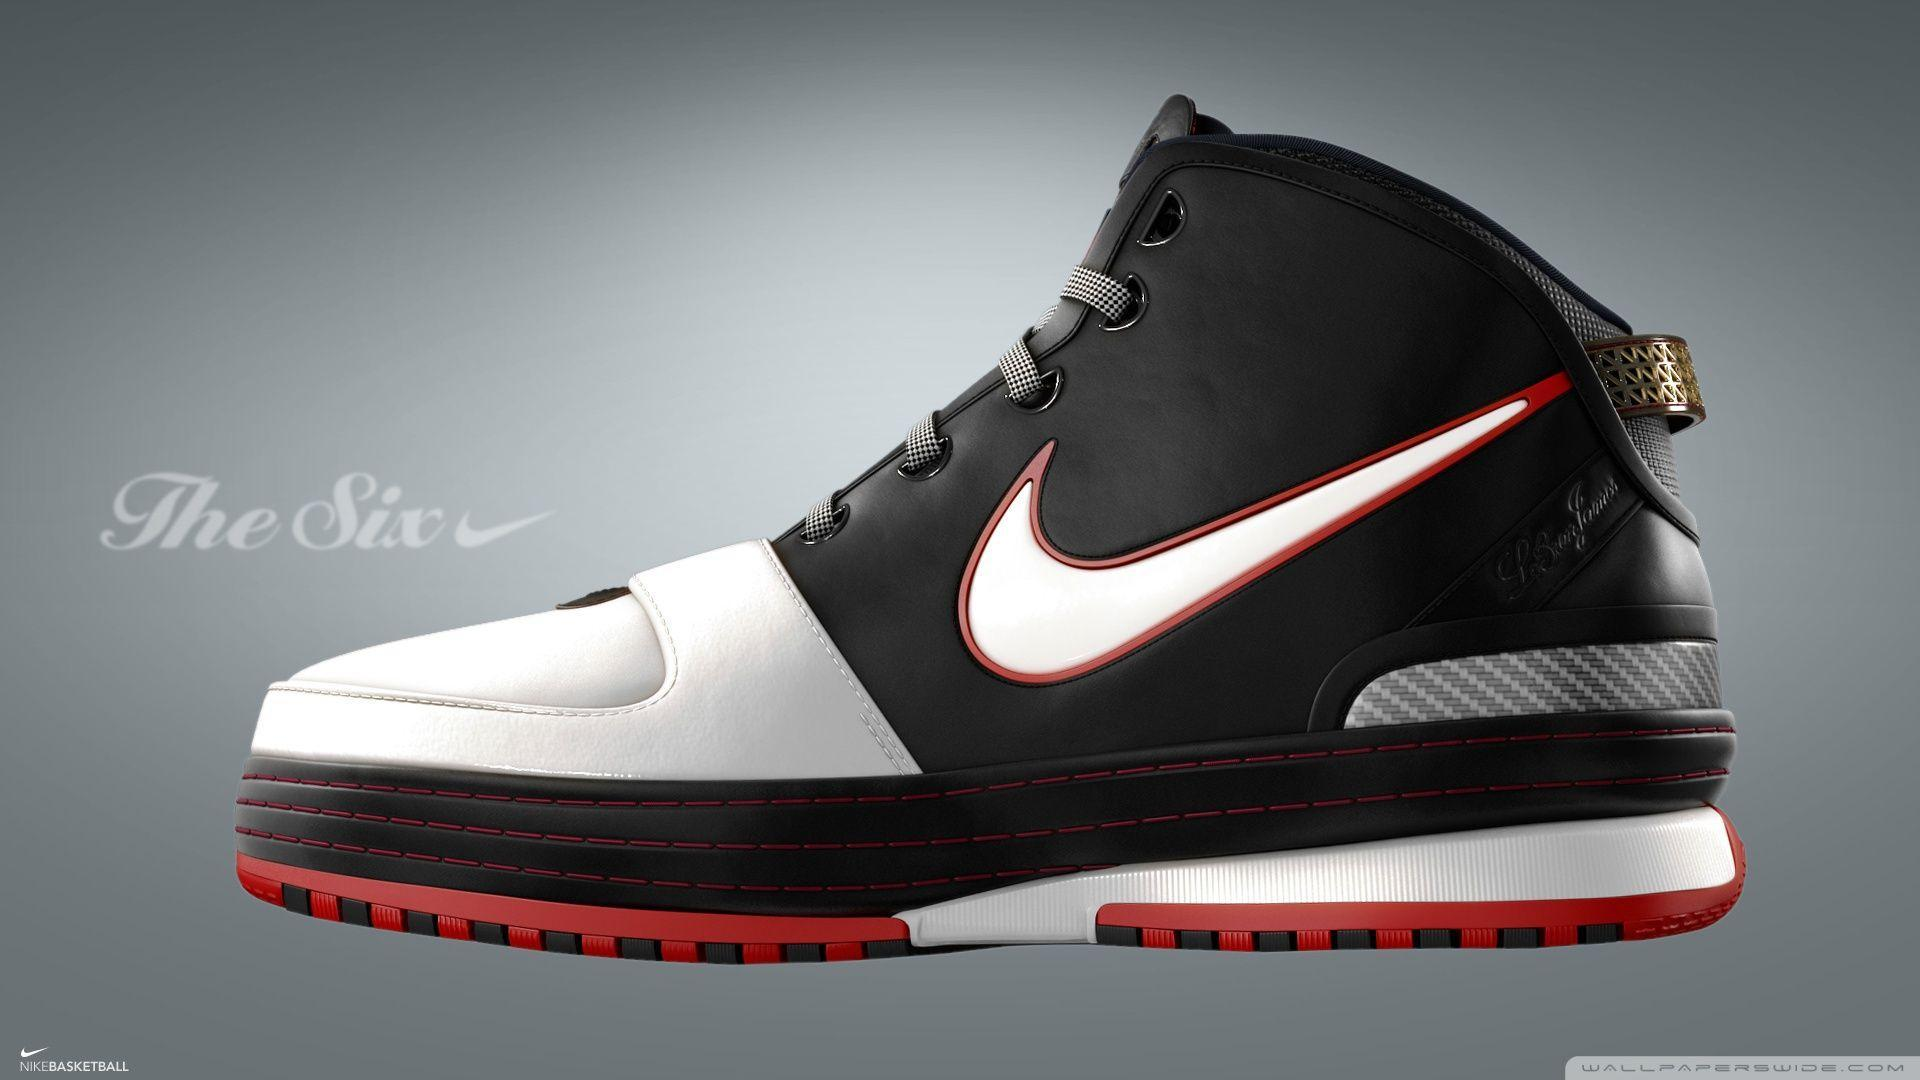 LeBron James Shoes Wallpapers - Wallpaper Cave